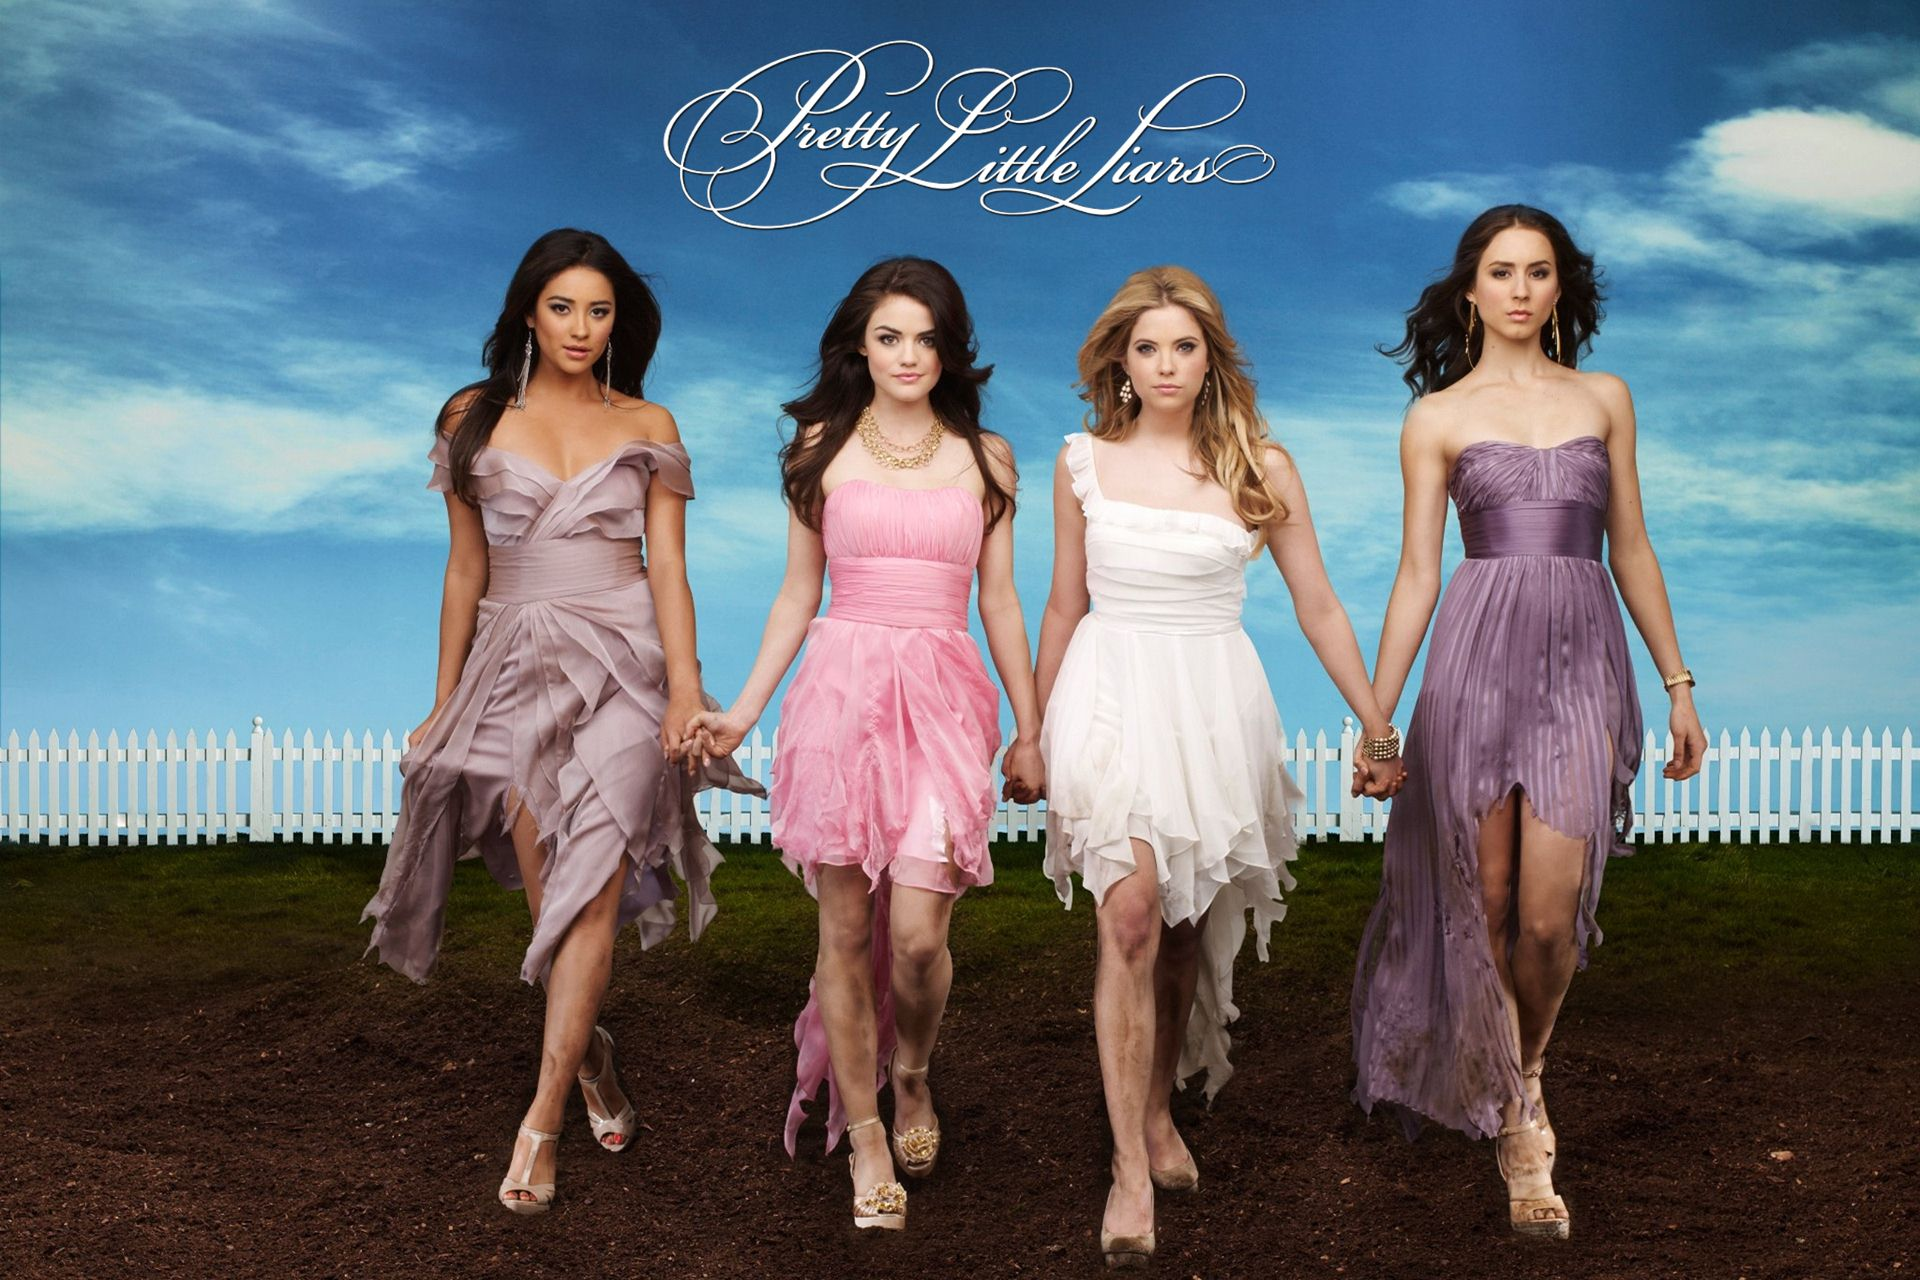 Pll Wallpaper 2014 Related Keywords amp Suggestions   Pll 1920x1280